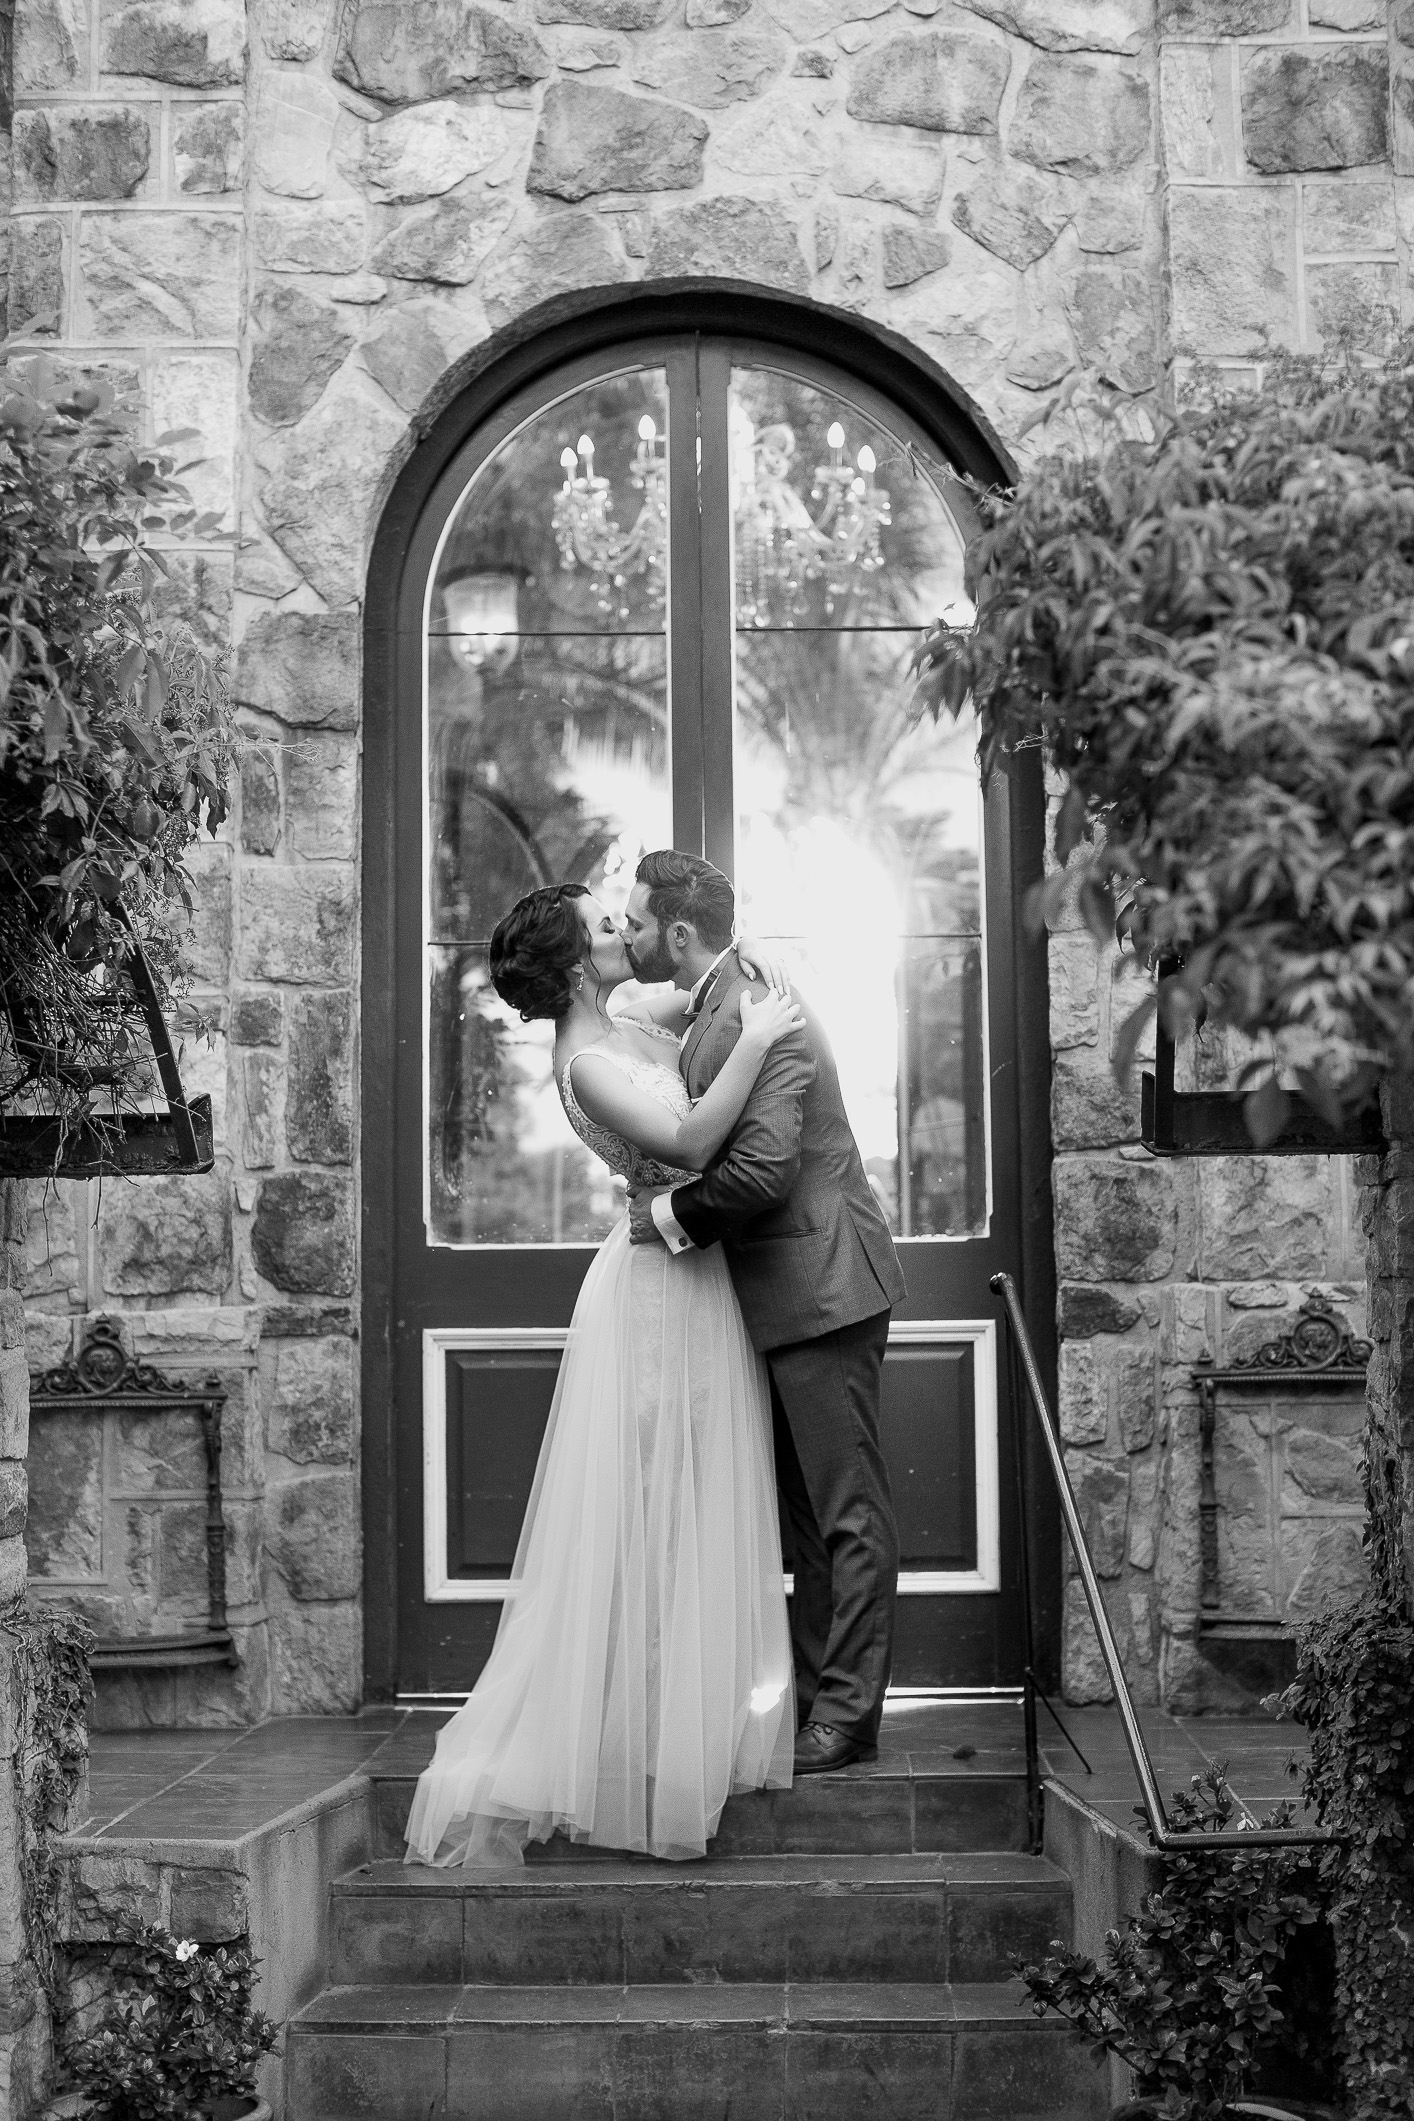 shepstone gardens wedding photographer 2017026.jpg